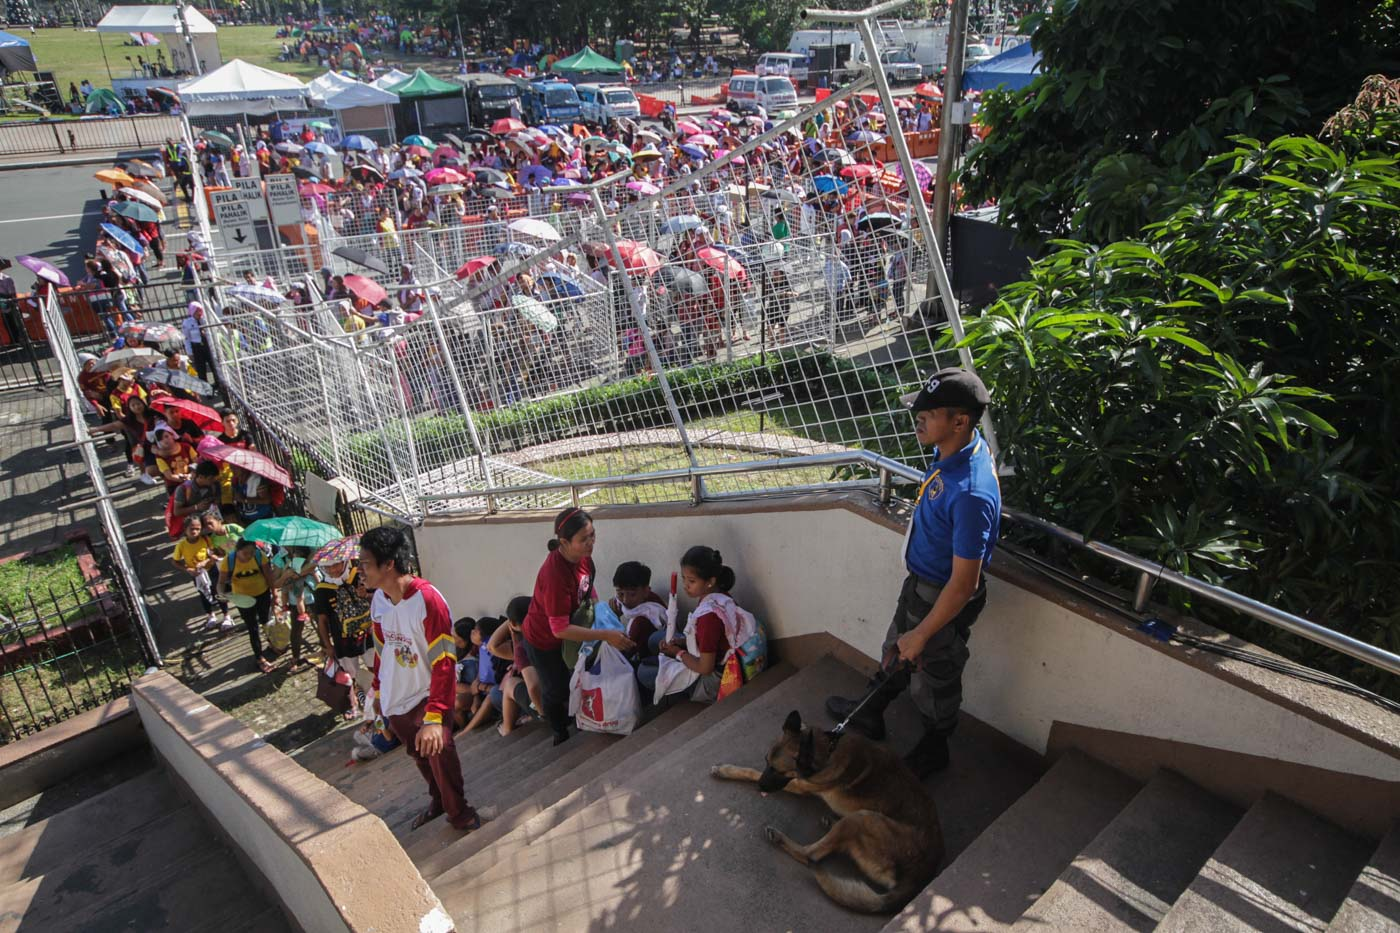 LONG LINES. Devotees fall in line before signs like this on January 8, 2019, to join the traditional Pahalik ahead of the Feast of the Black Nazarene. Photo by Lito Borras/Rappler